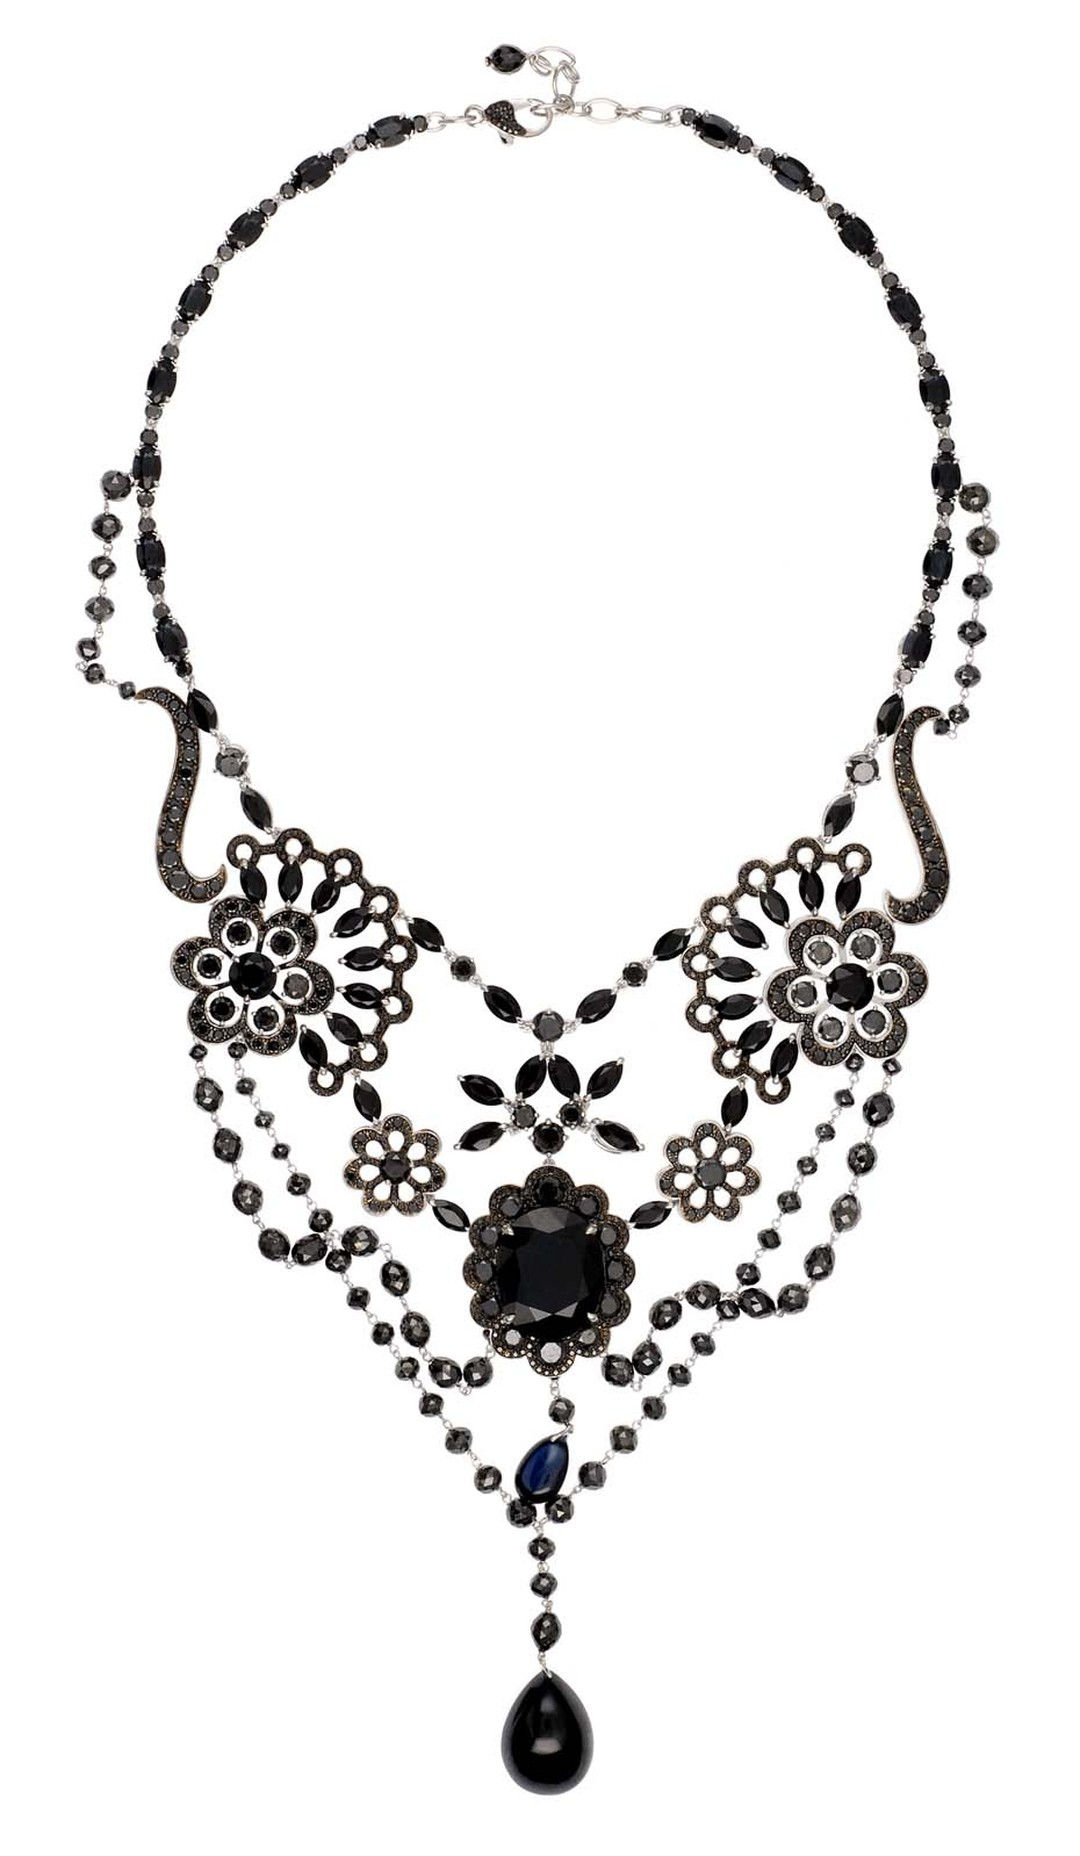 Chopard Red Carpet Collection necklace with black diamonds, sapphires and spinels set in white gold (£POA).